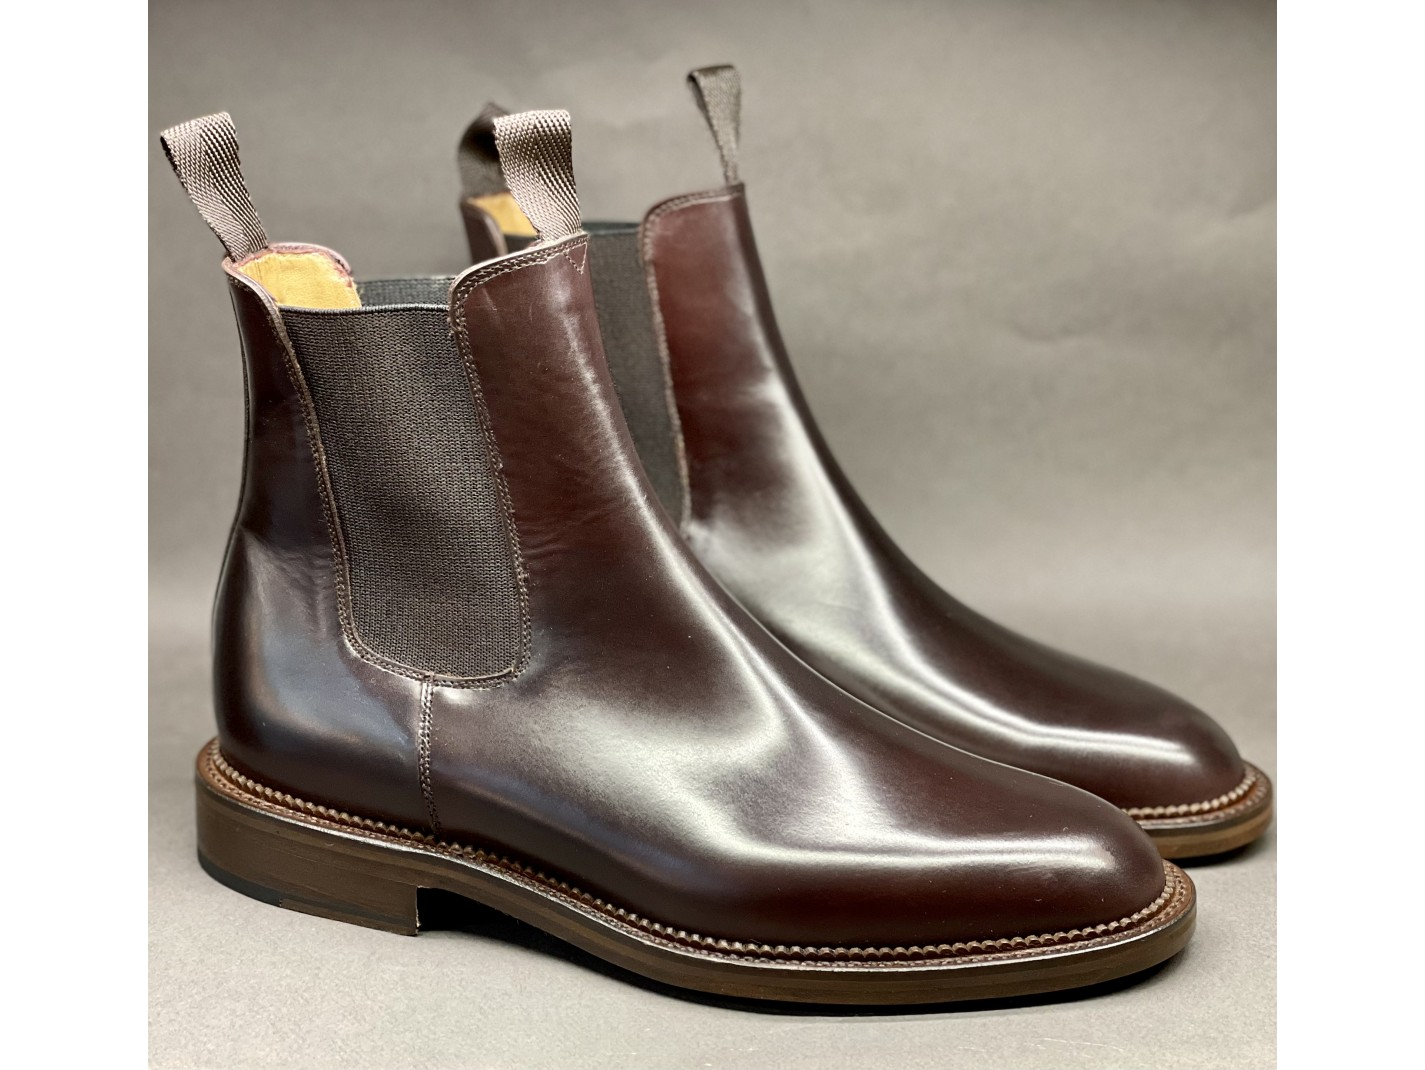 LOAFERS PICOTS Burgundy